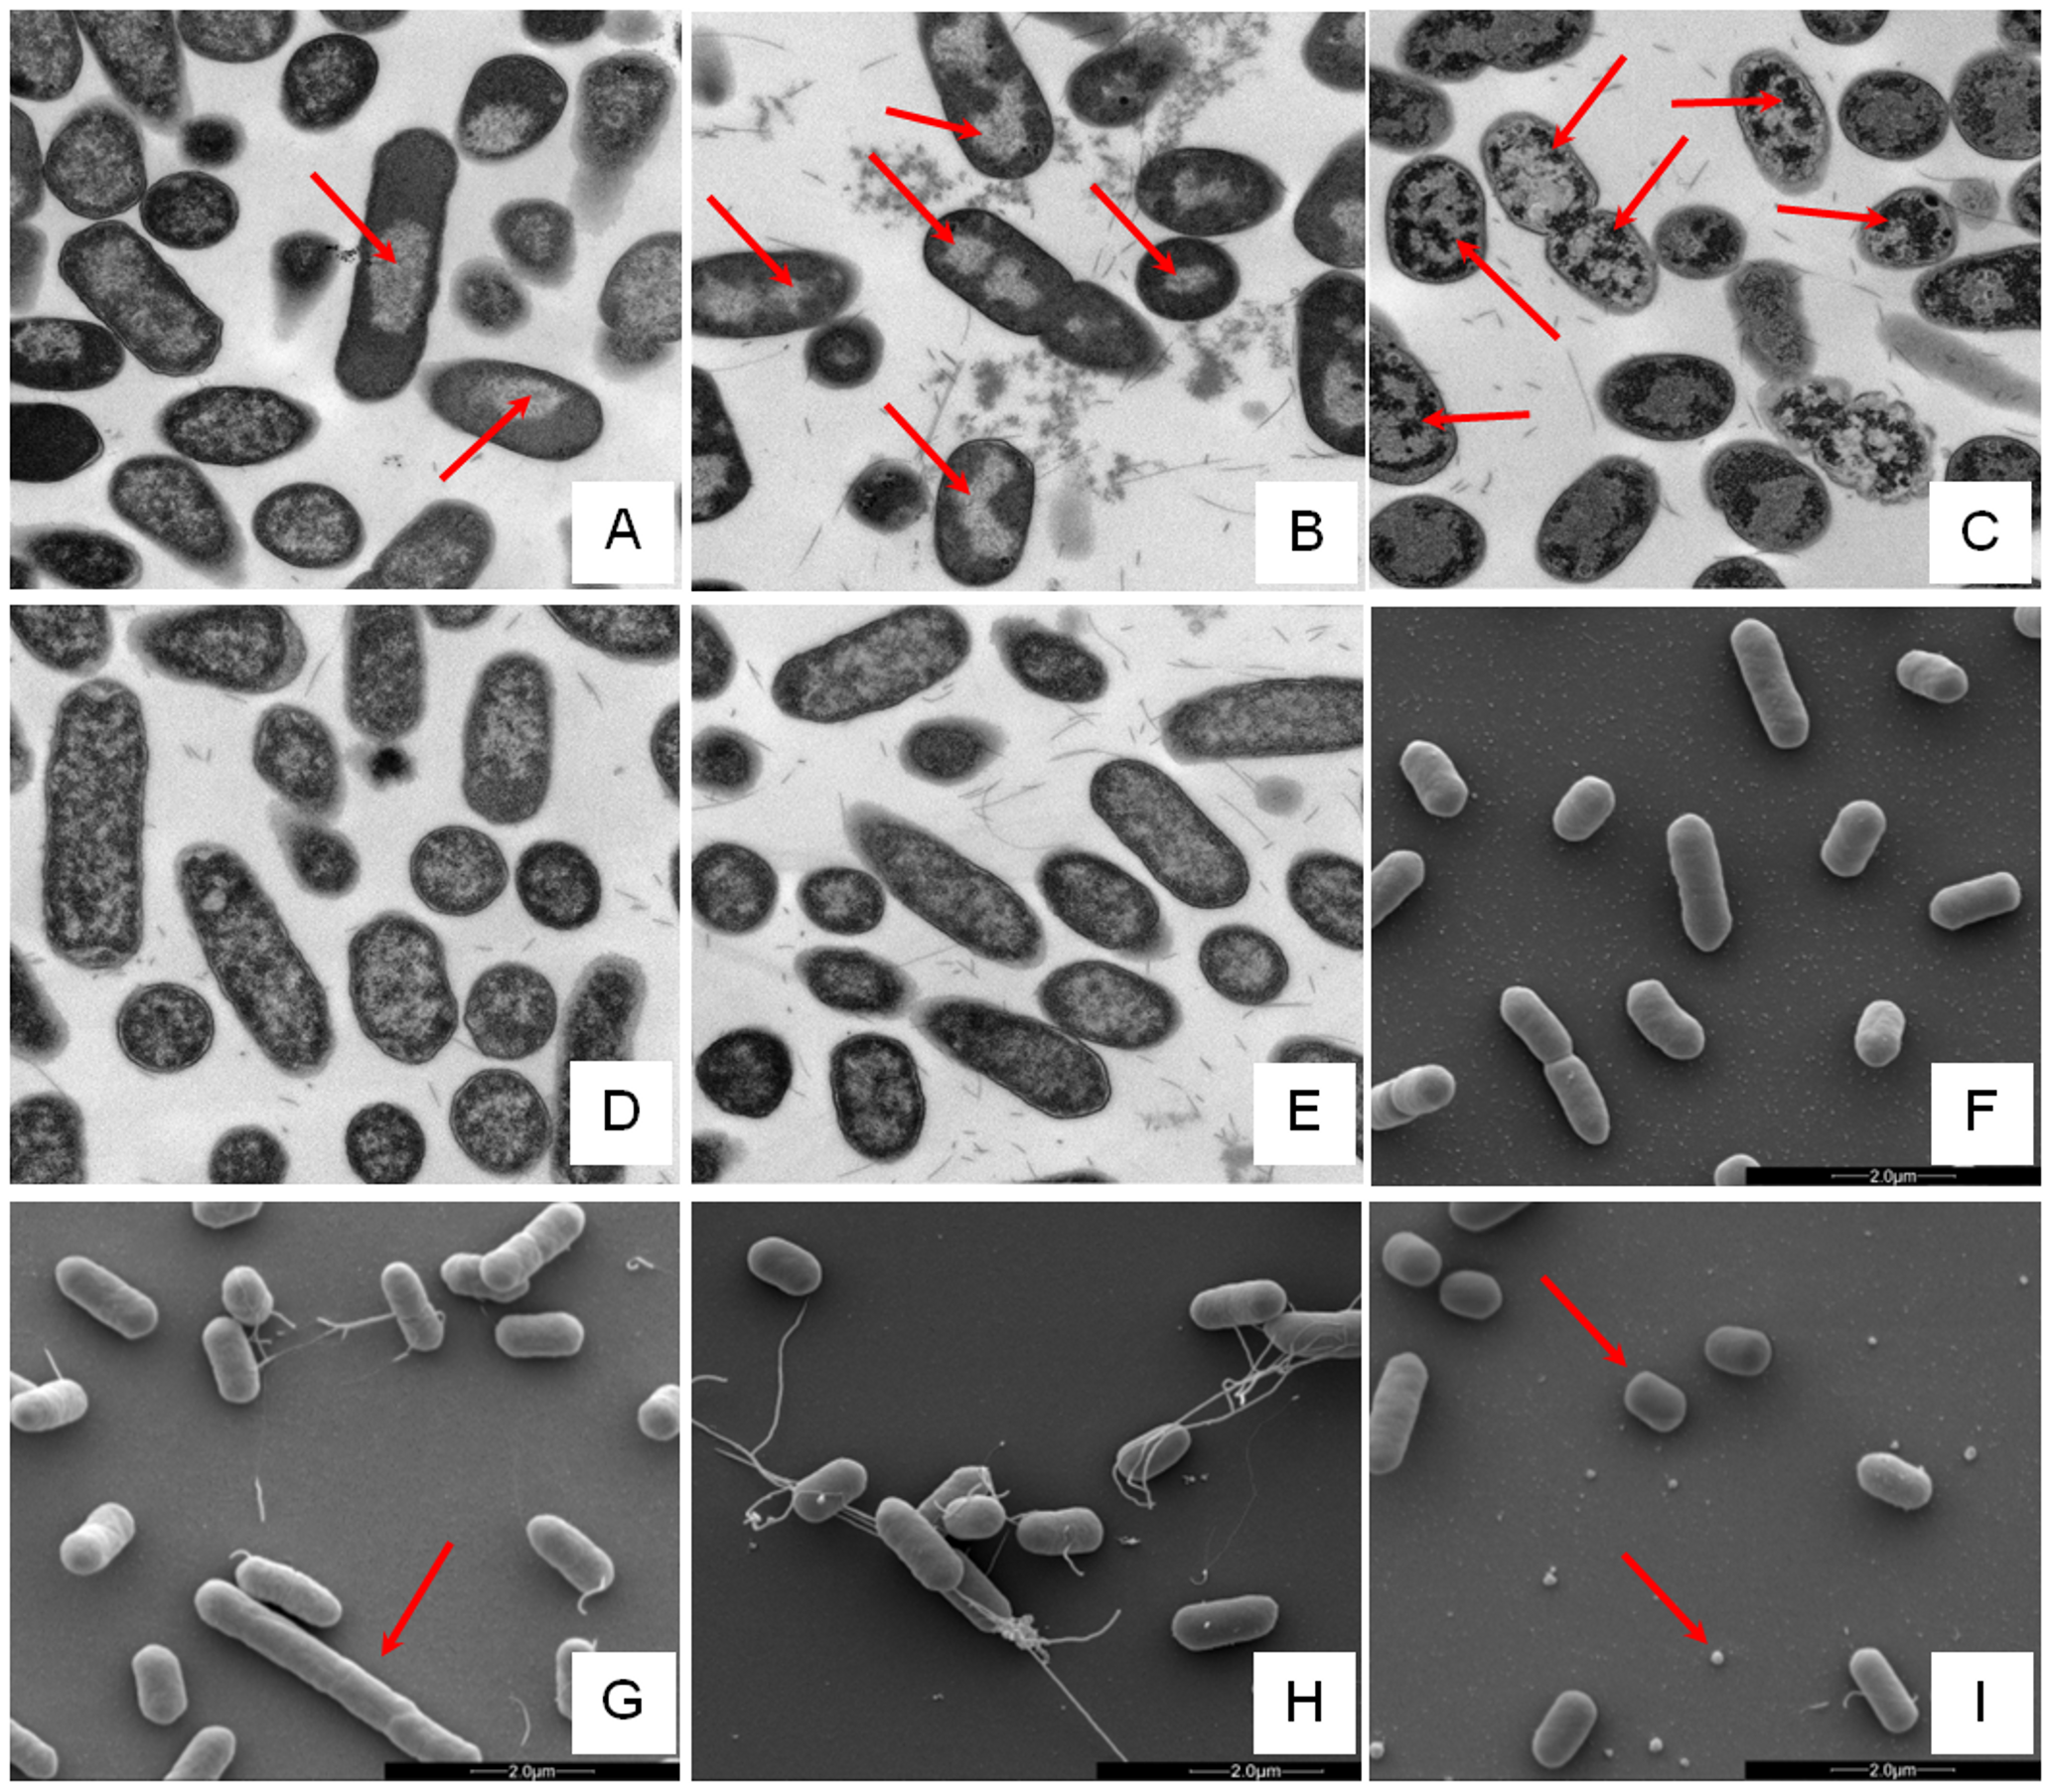 Electron microscopic analysis of <i>E. coli</i> response to AMP challenge.